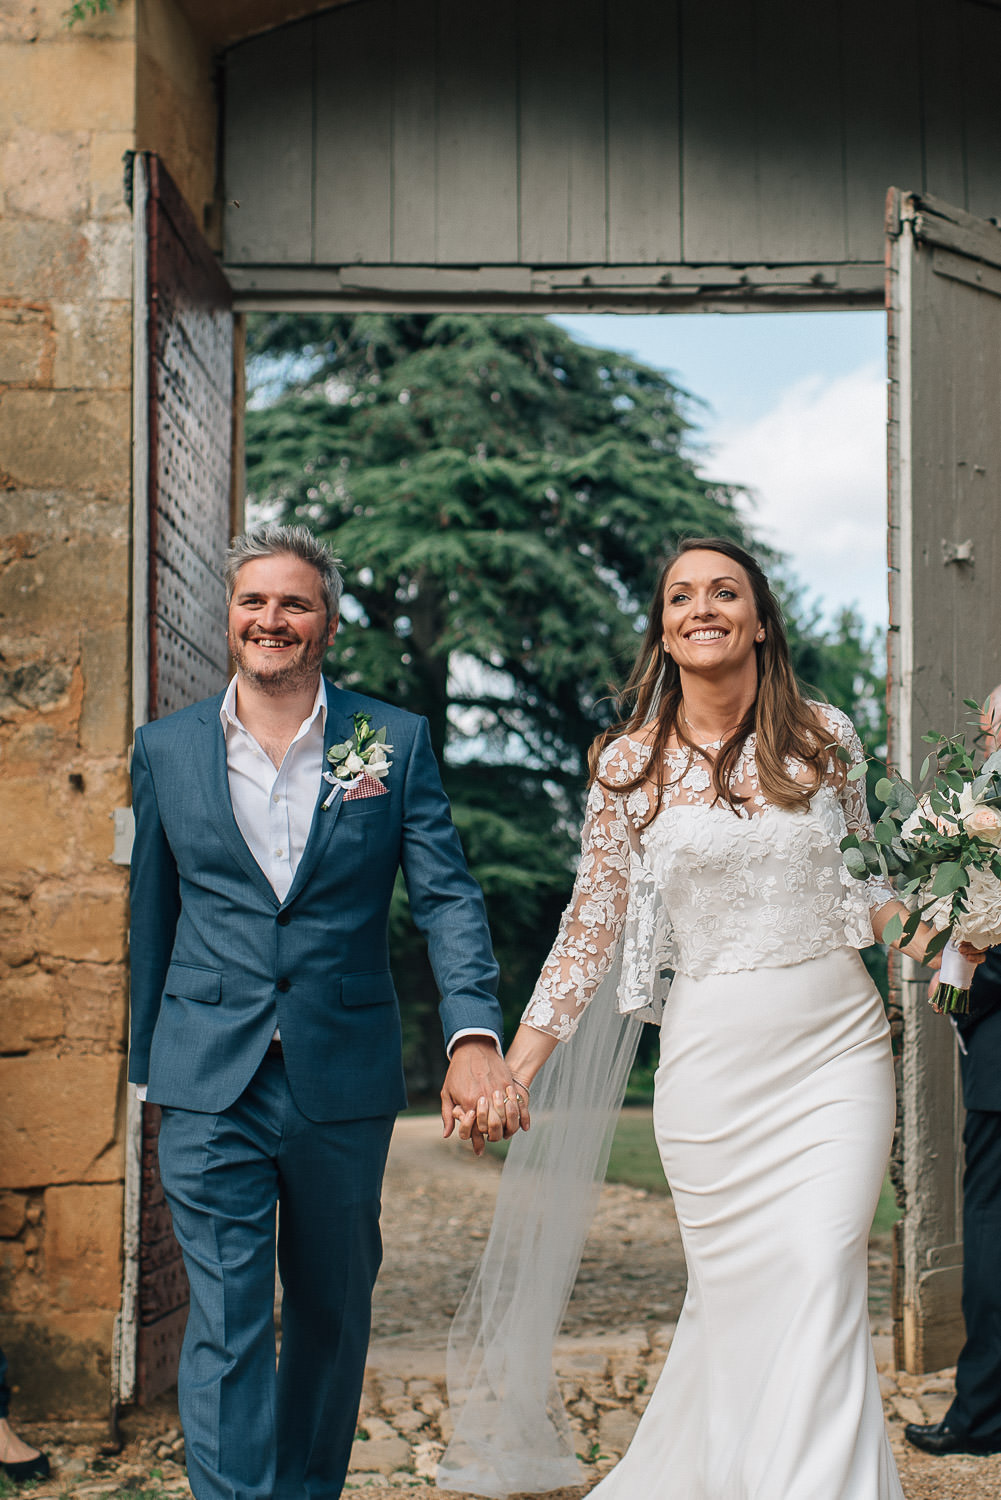 Arrival of bride and groom in chateau de la bourlie wedding by french destination wedding photographer the shannons photography